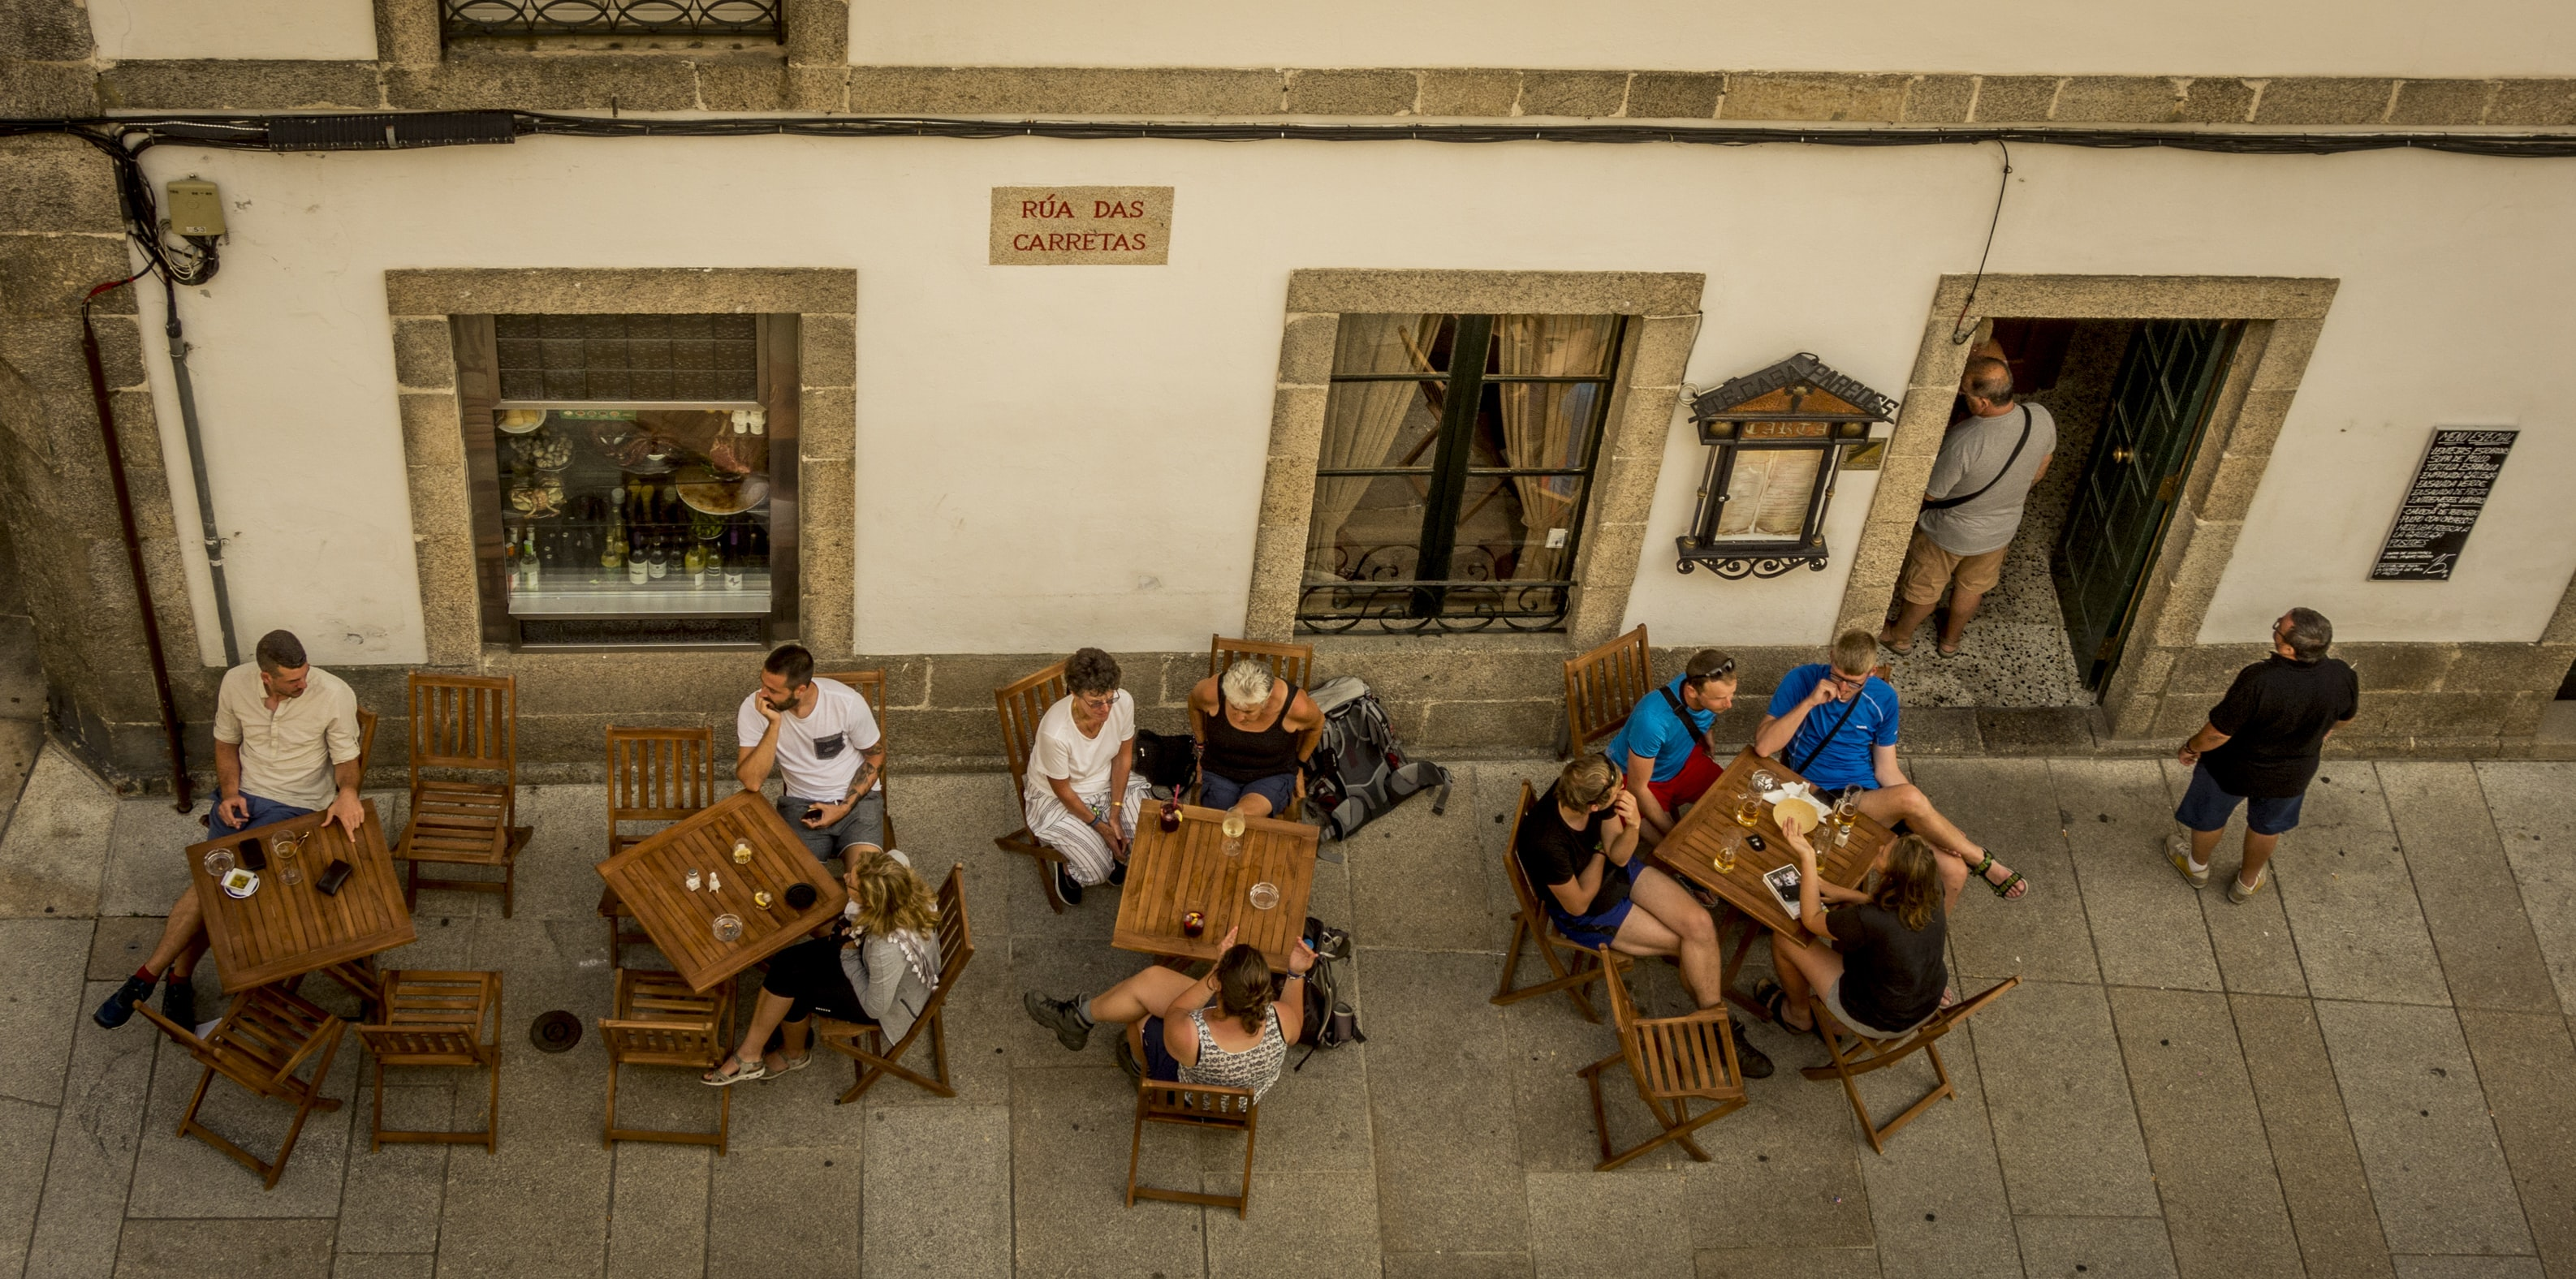 Looking down people eating at an open air cafe in Spain